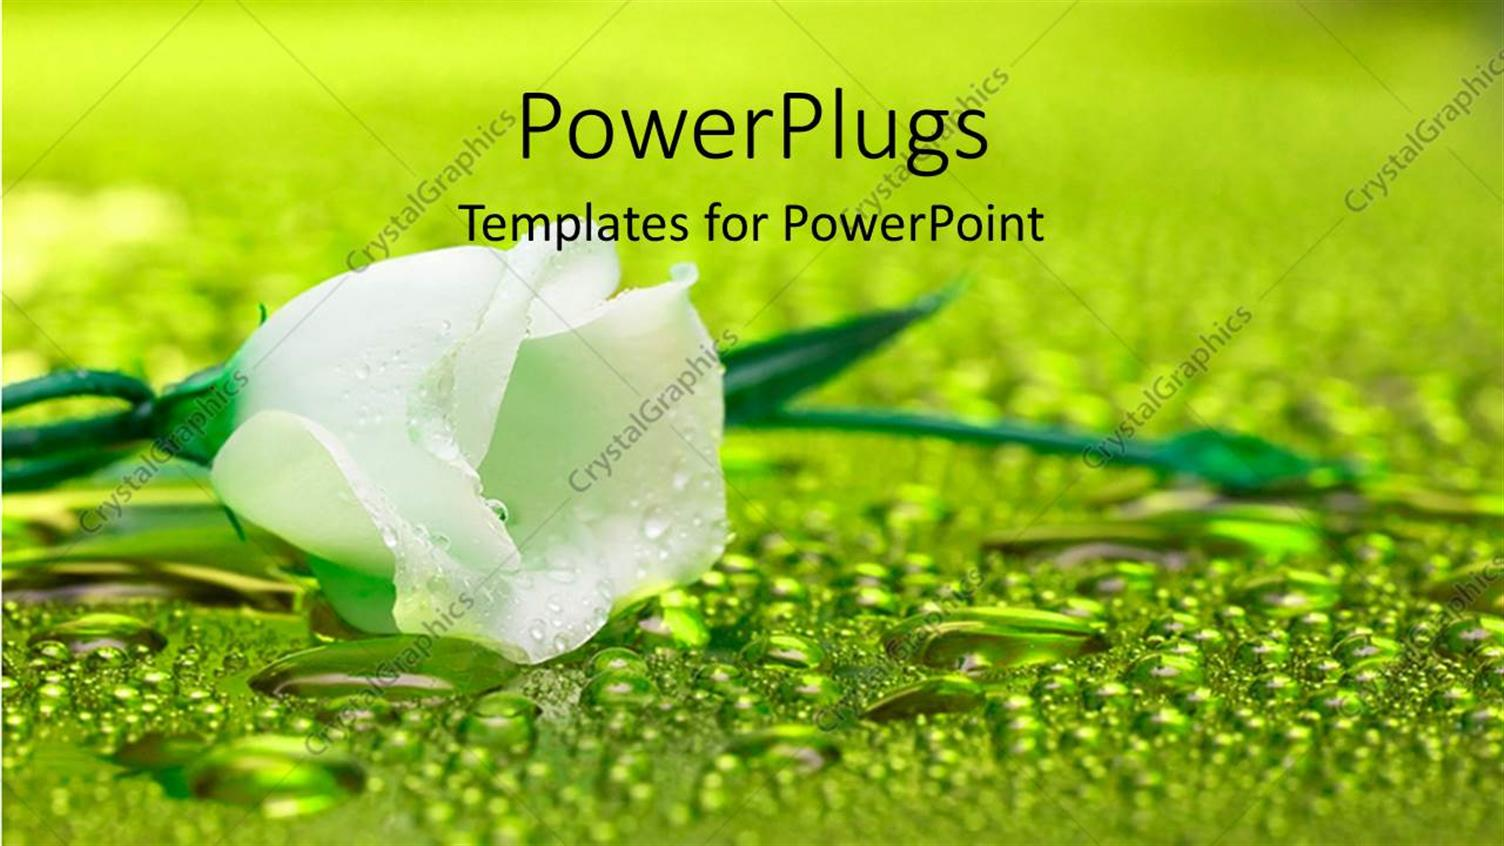 PowerPoint Template Displaying White Flower with Water Droplets